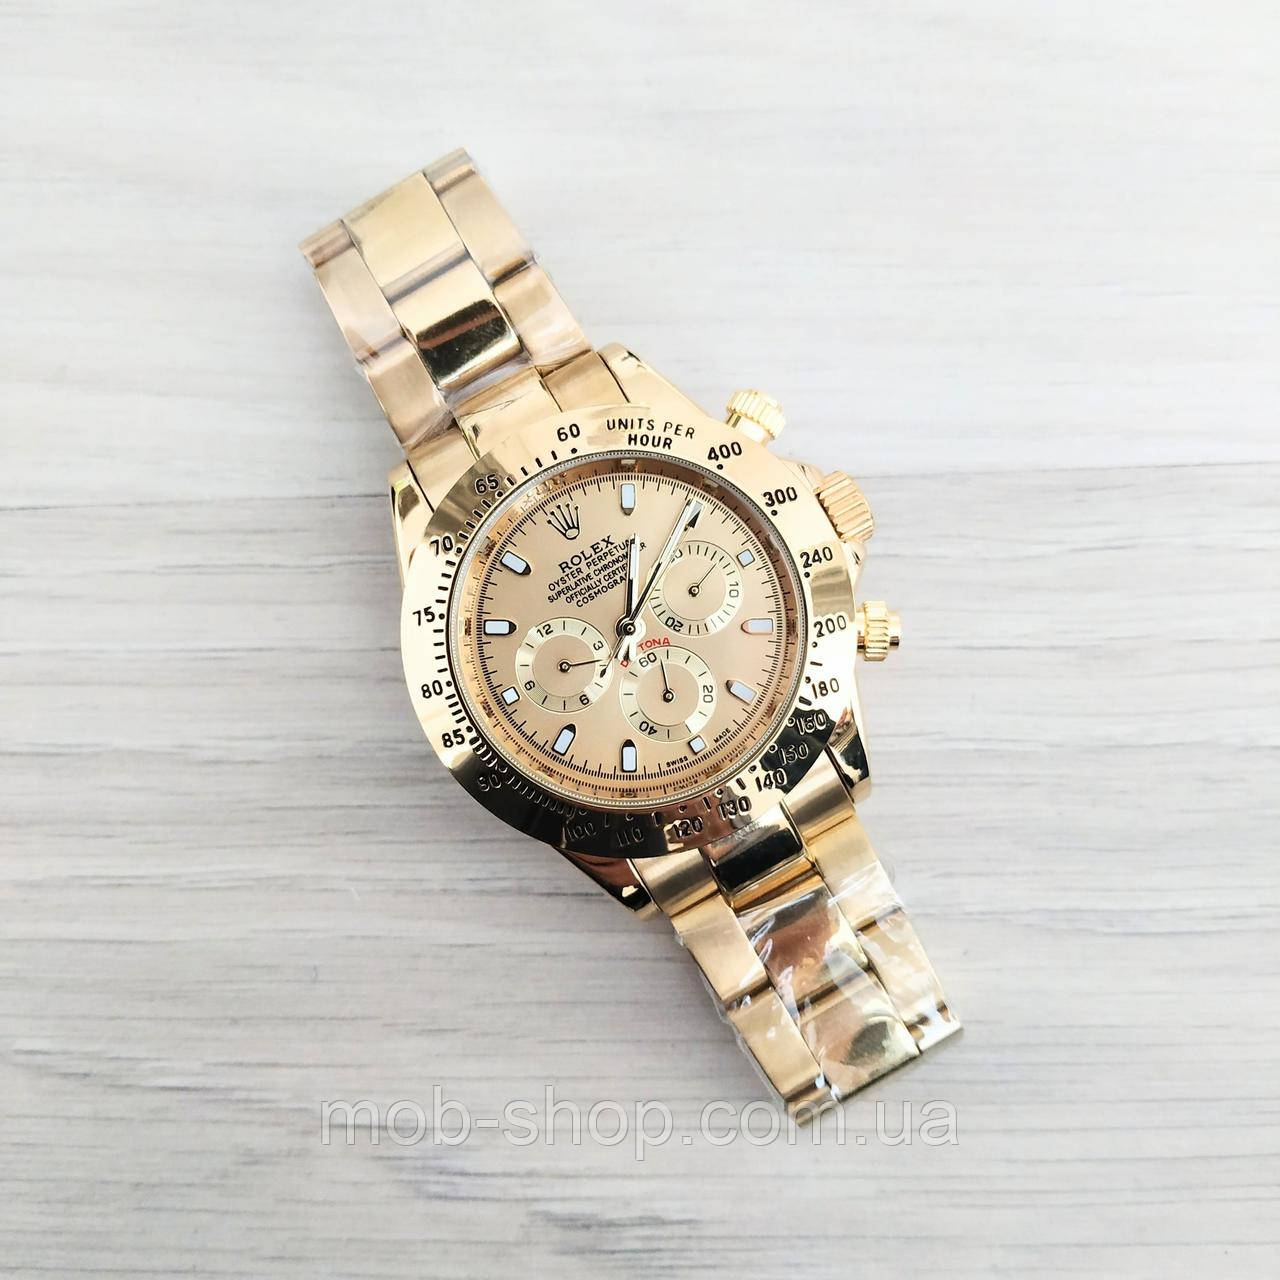 Наручные часы Rolex Daytona AA Gold New